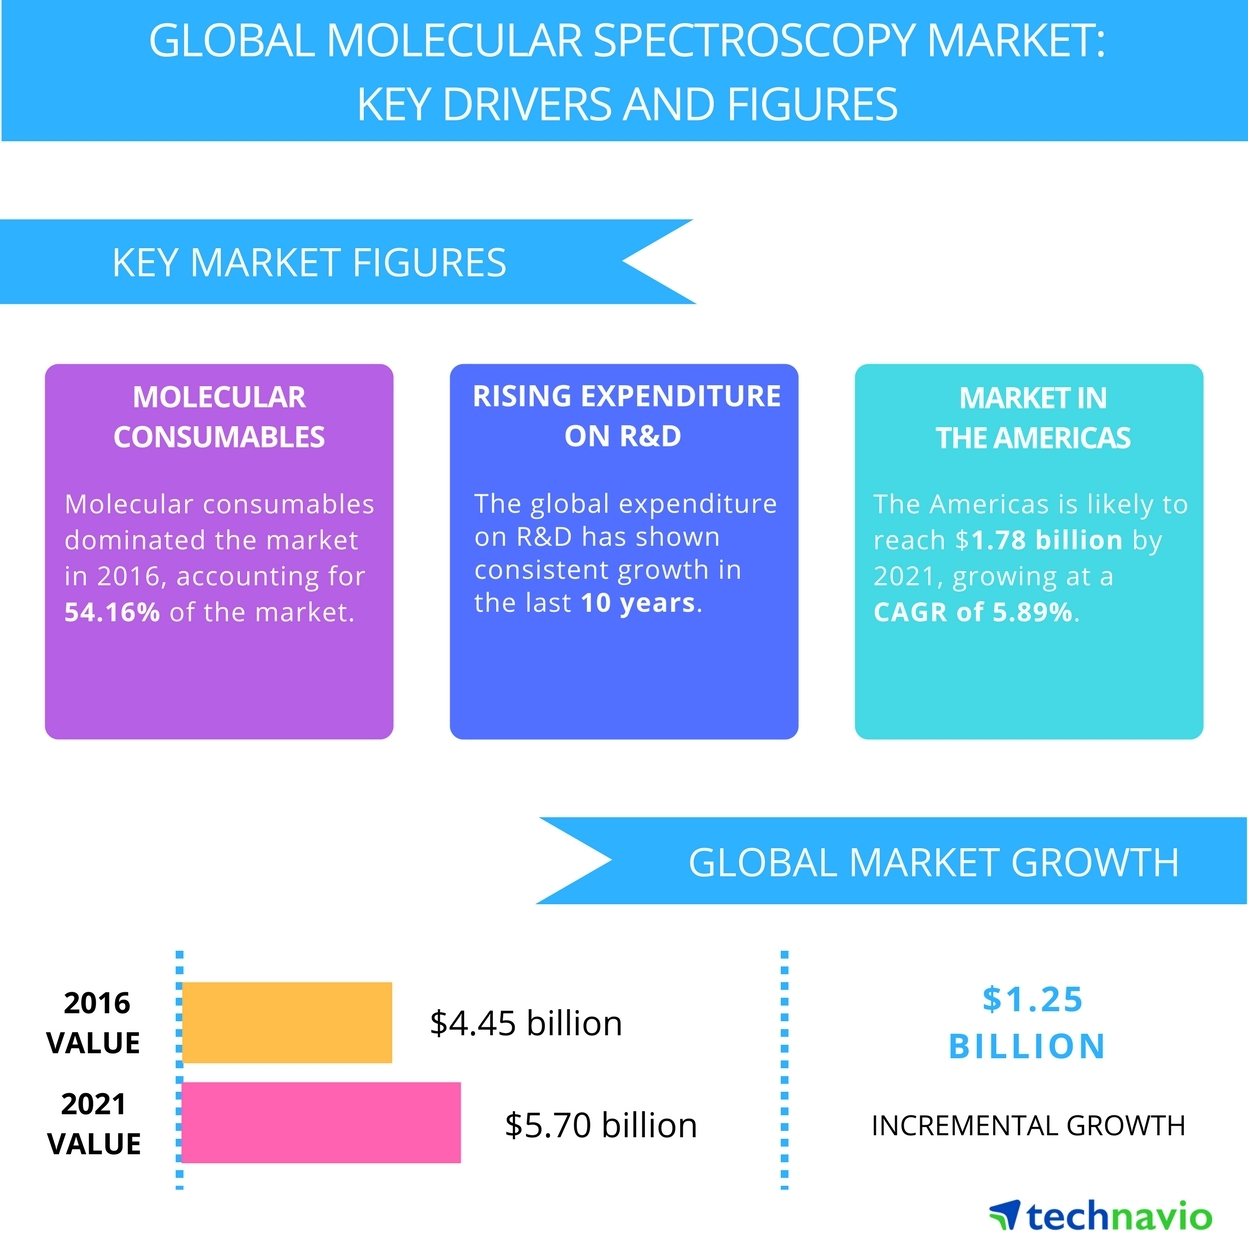 Technavio has published a new report on the global molecular spectroscopy market from 2017-2021. (Photo: Business Wire)